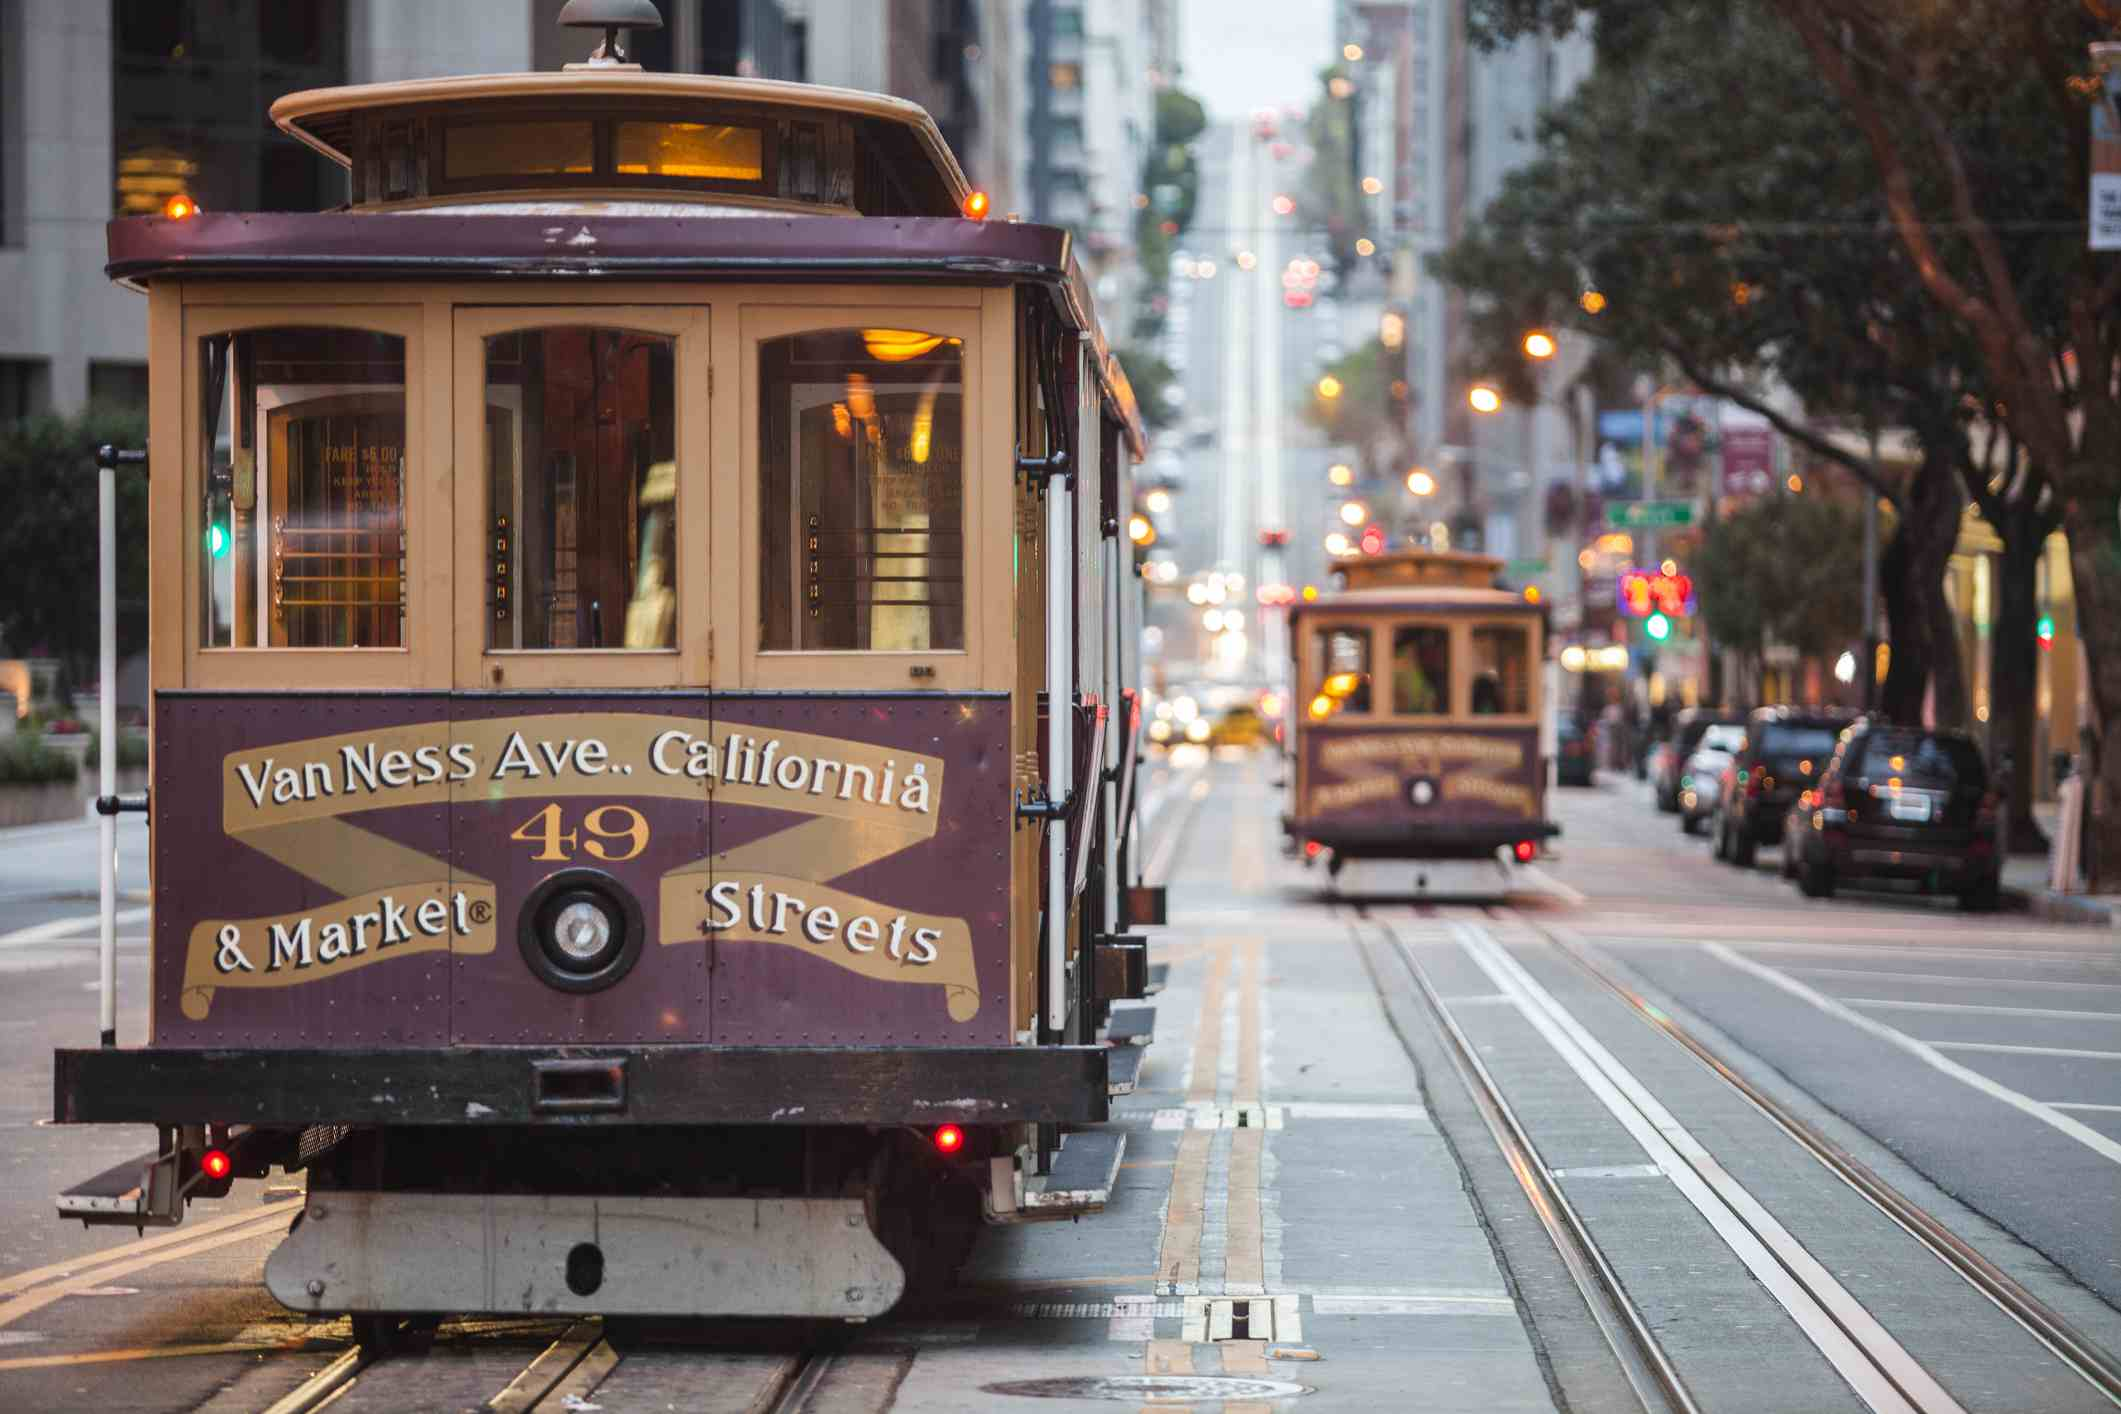 San Francisco Transportation How to Get Around Easily